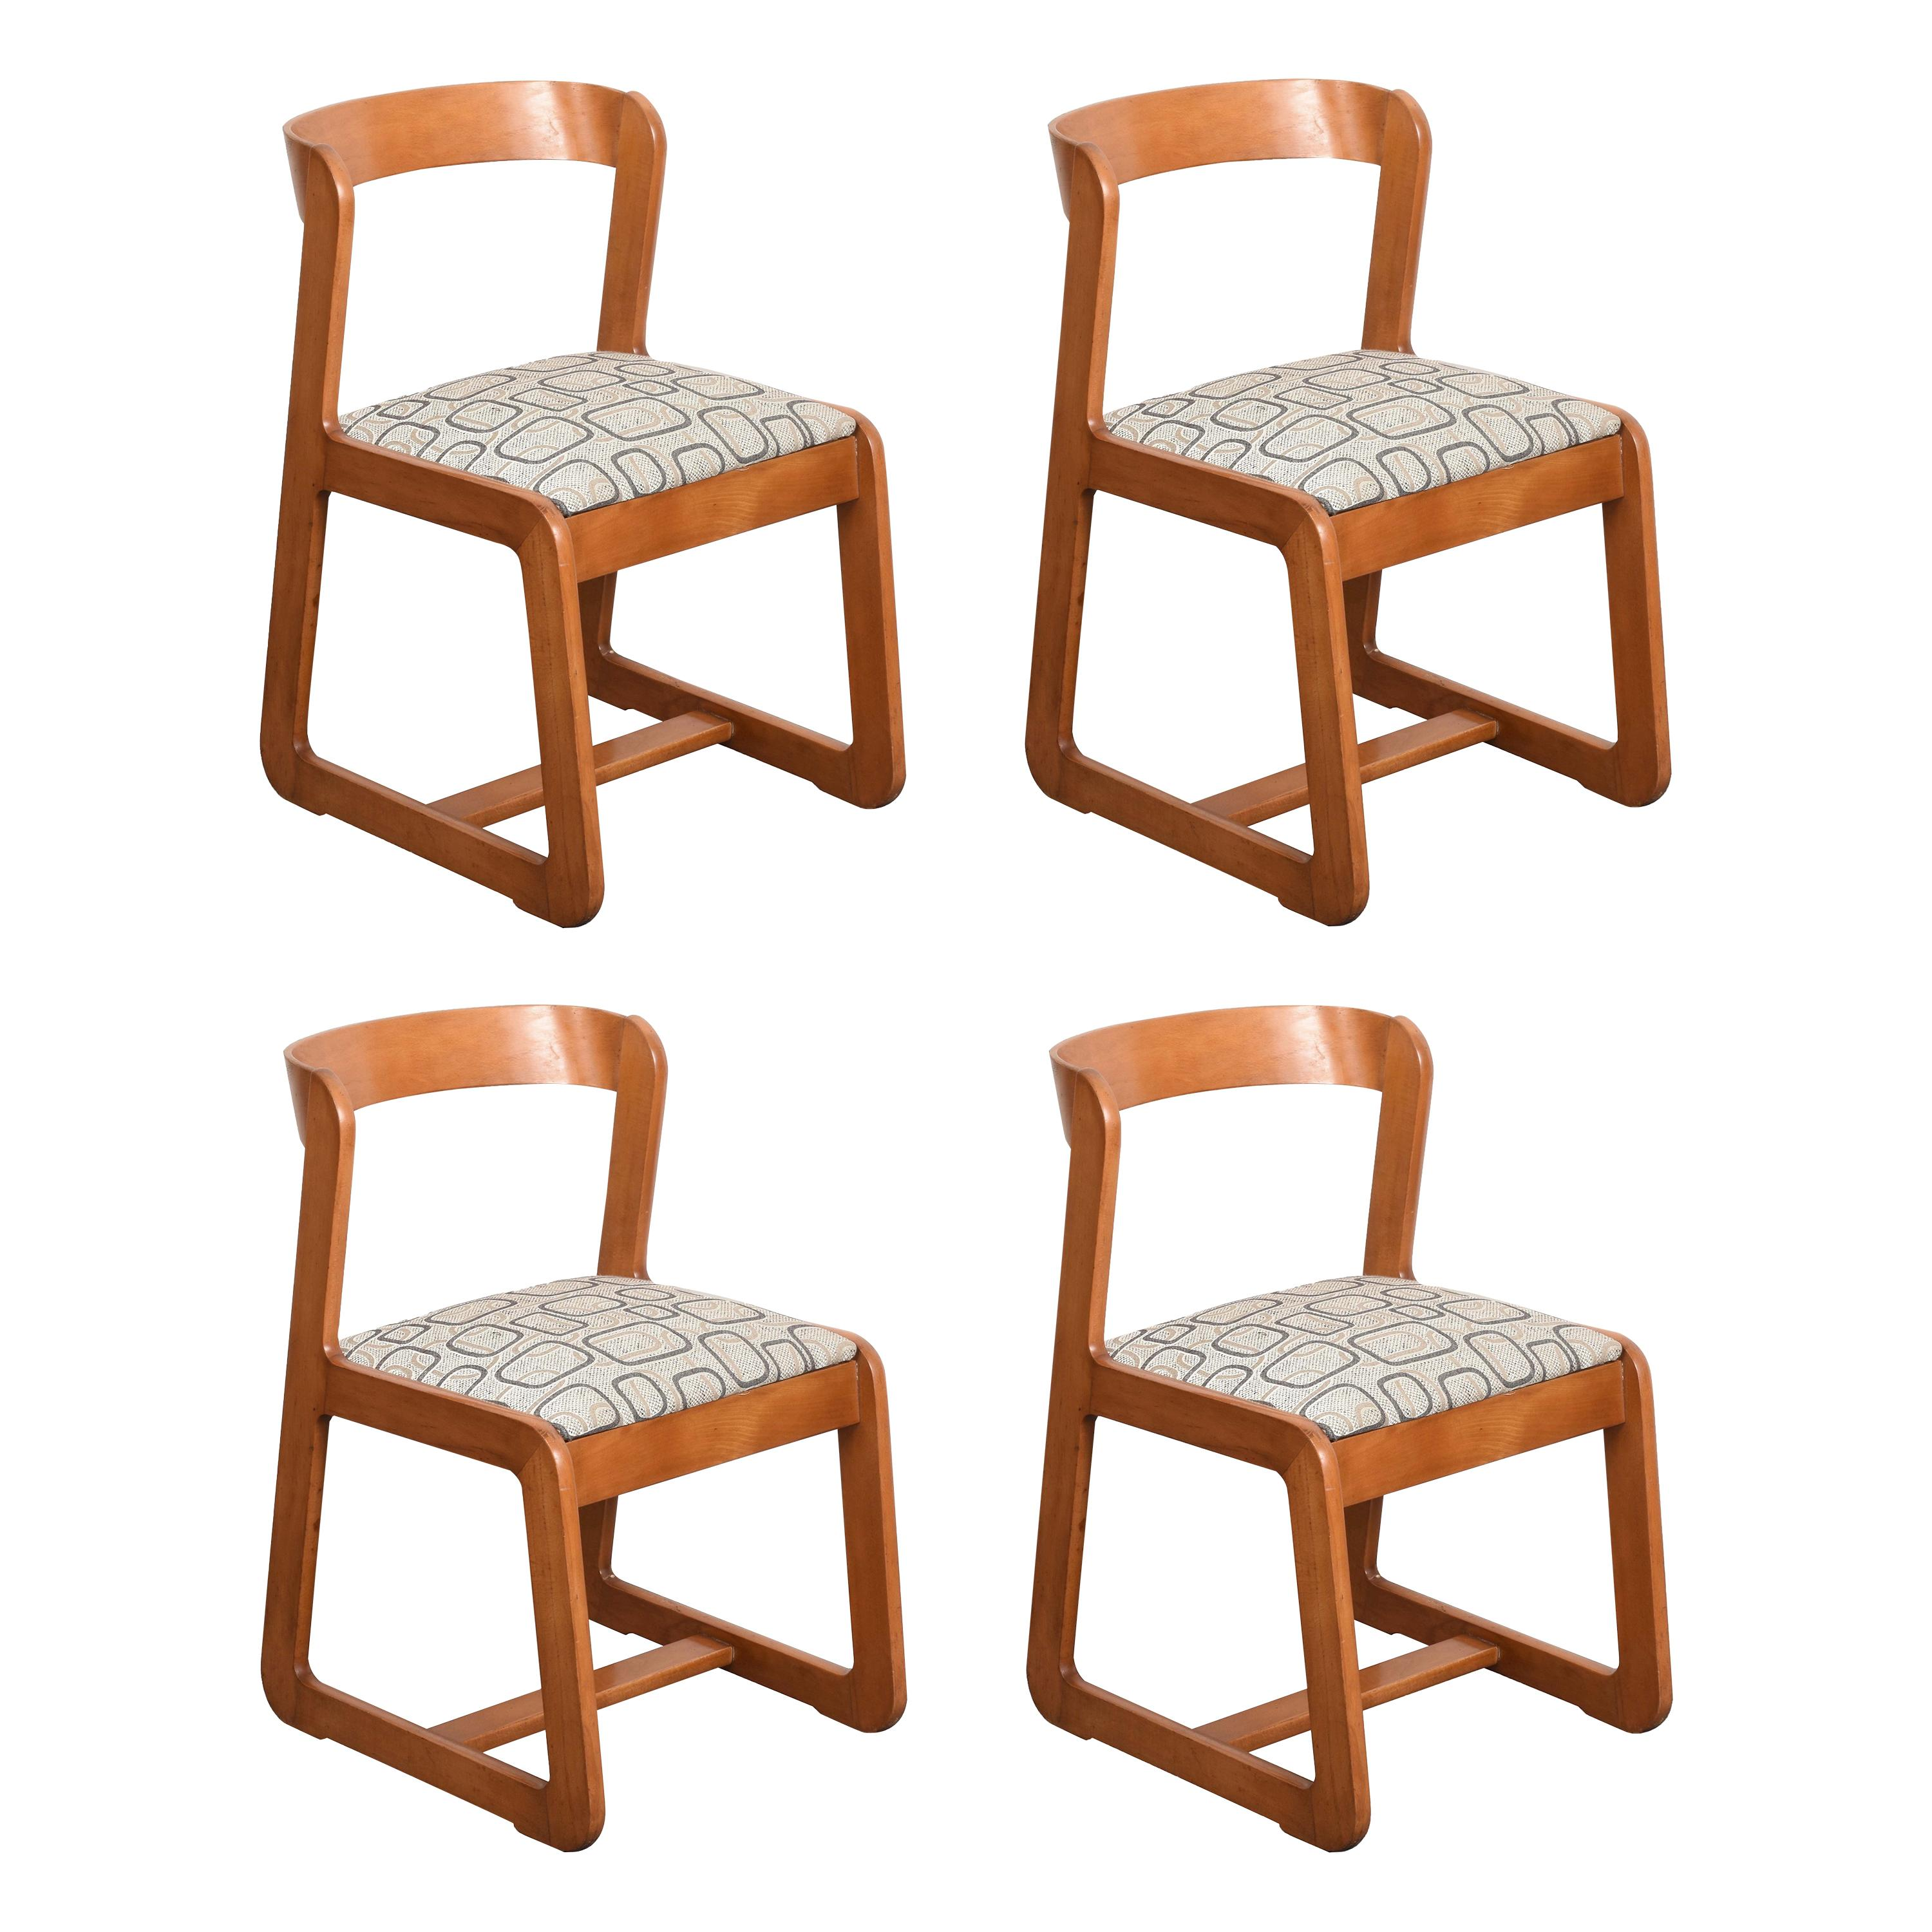 Willy Rizzo Midcentury Wooden and Fabric Italian Chairs for Mario Sabot, 1970